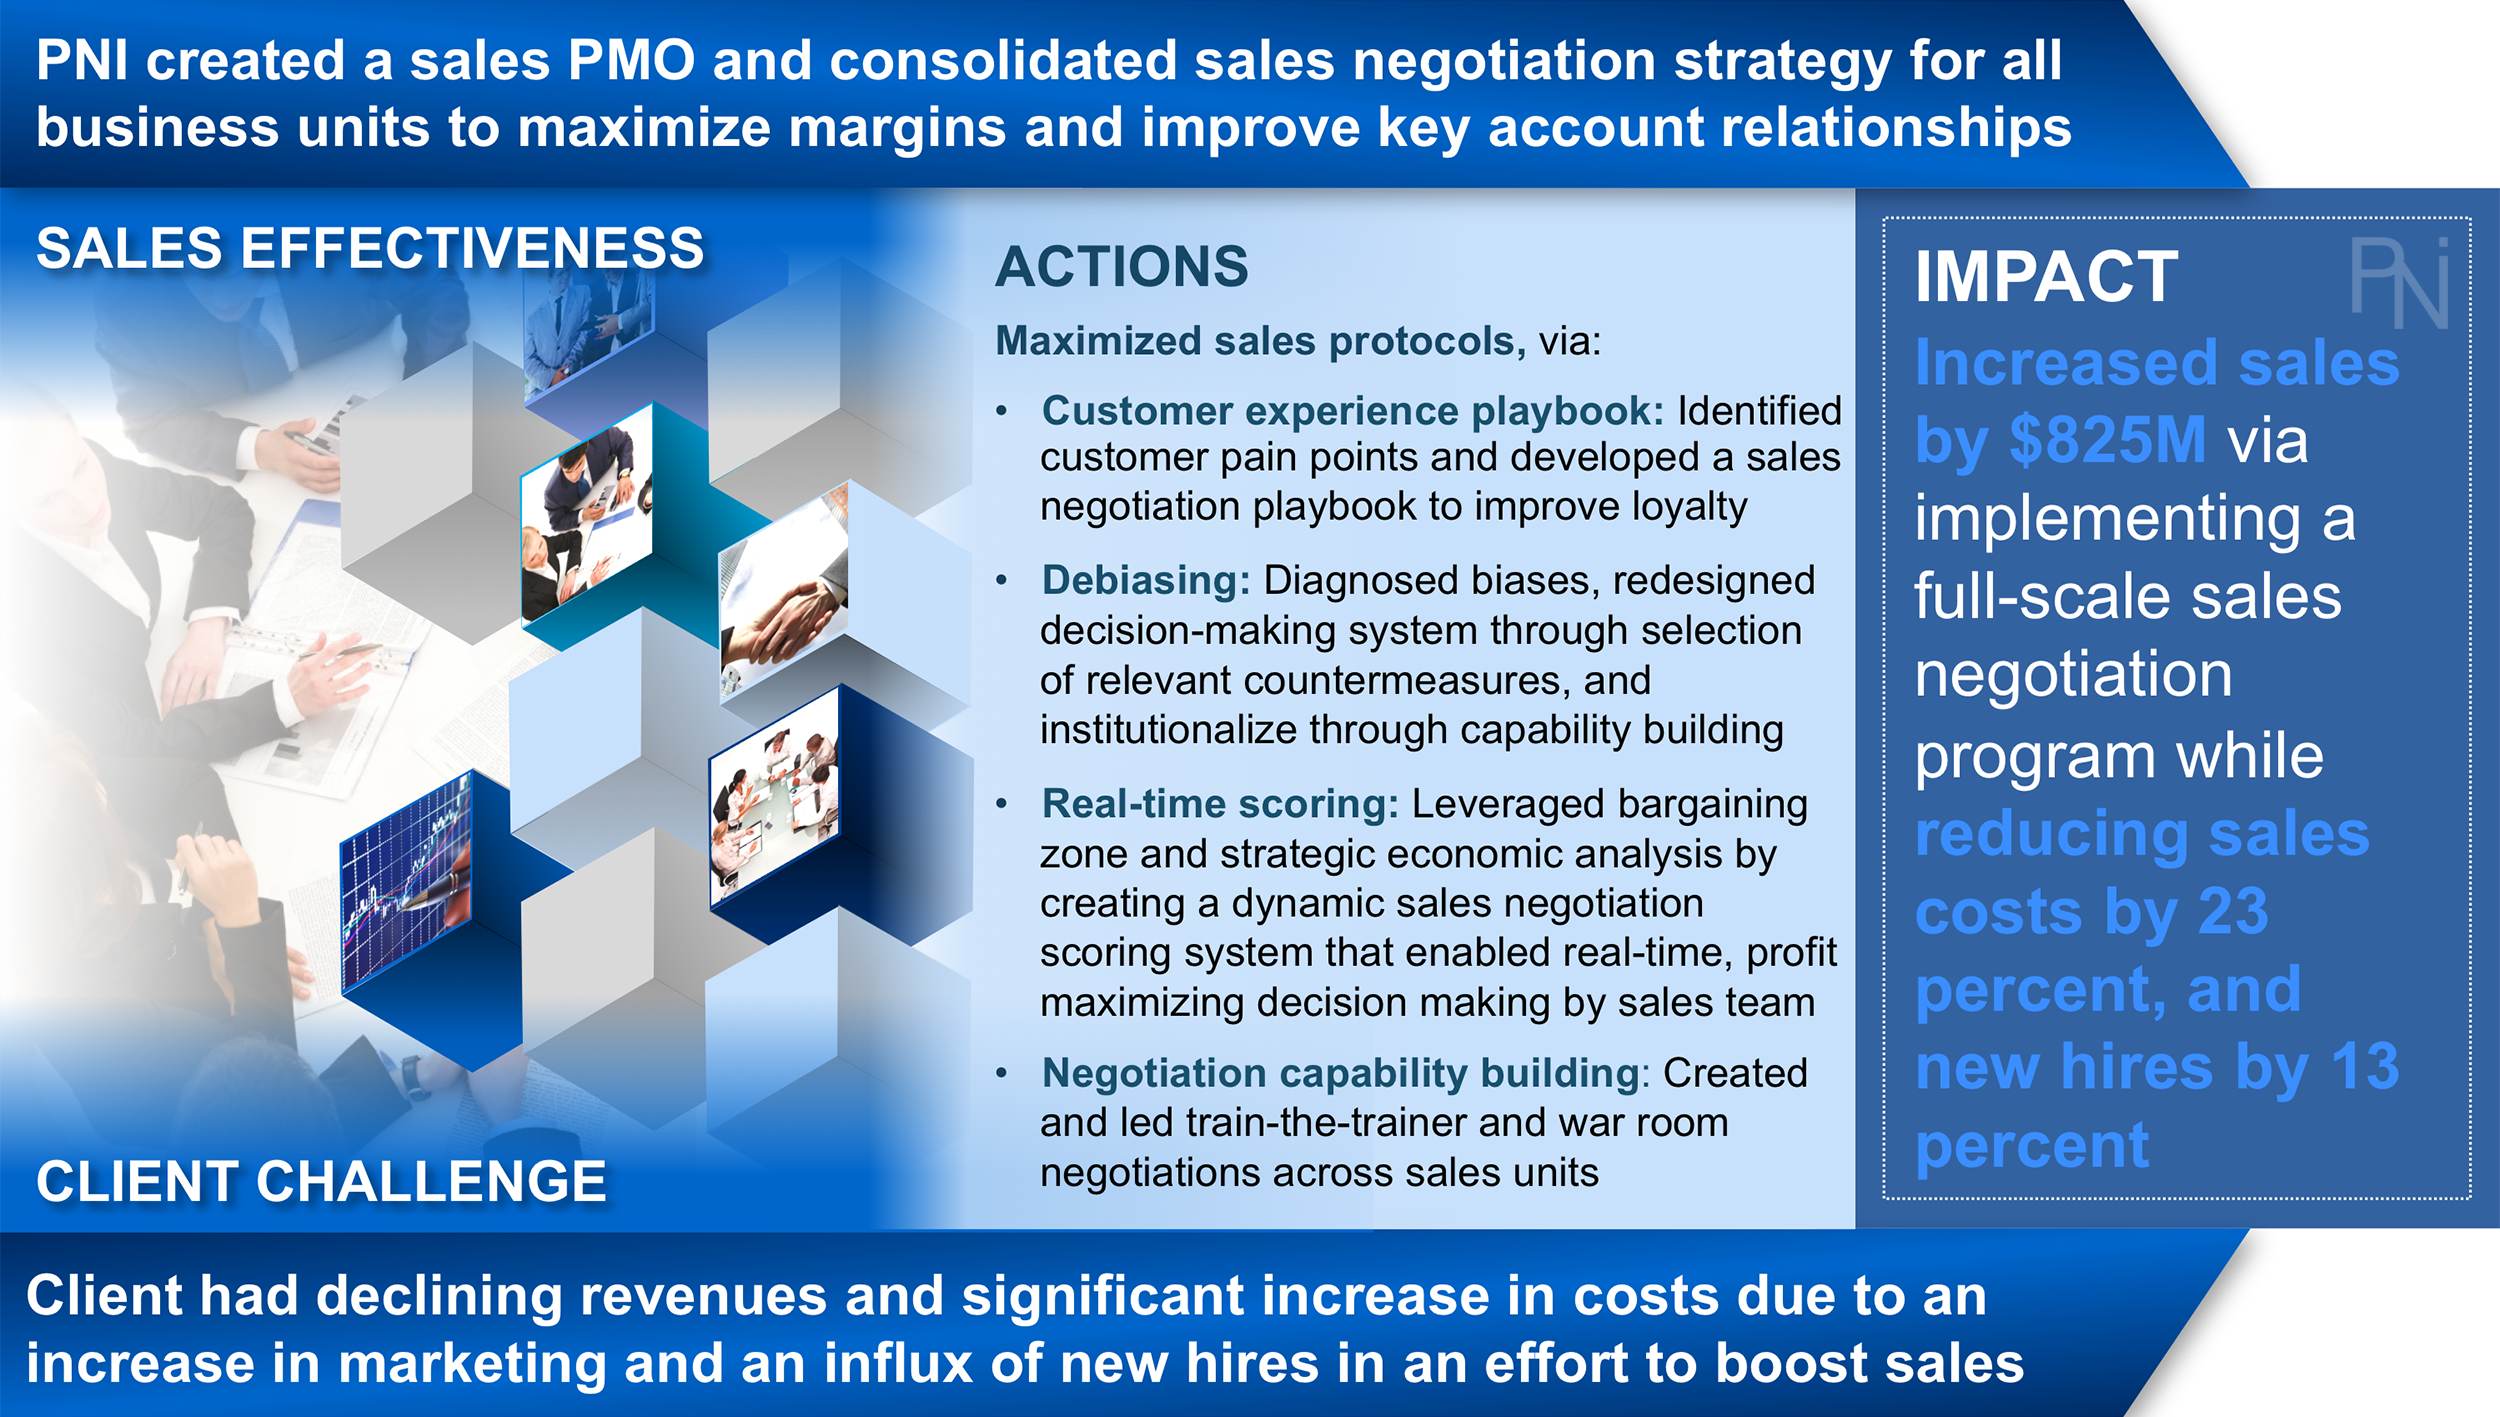 Sales Force Effectiveness Results 1 - PNI.png